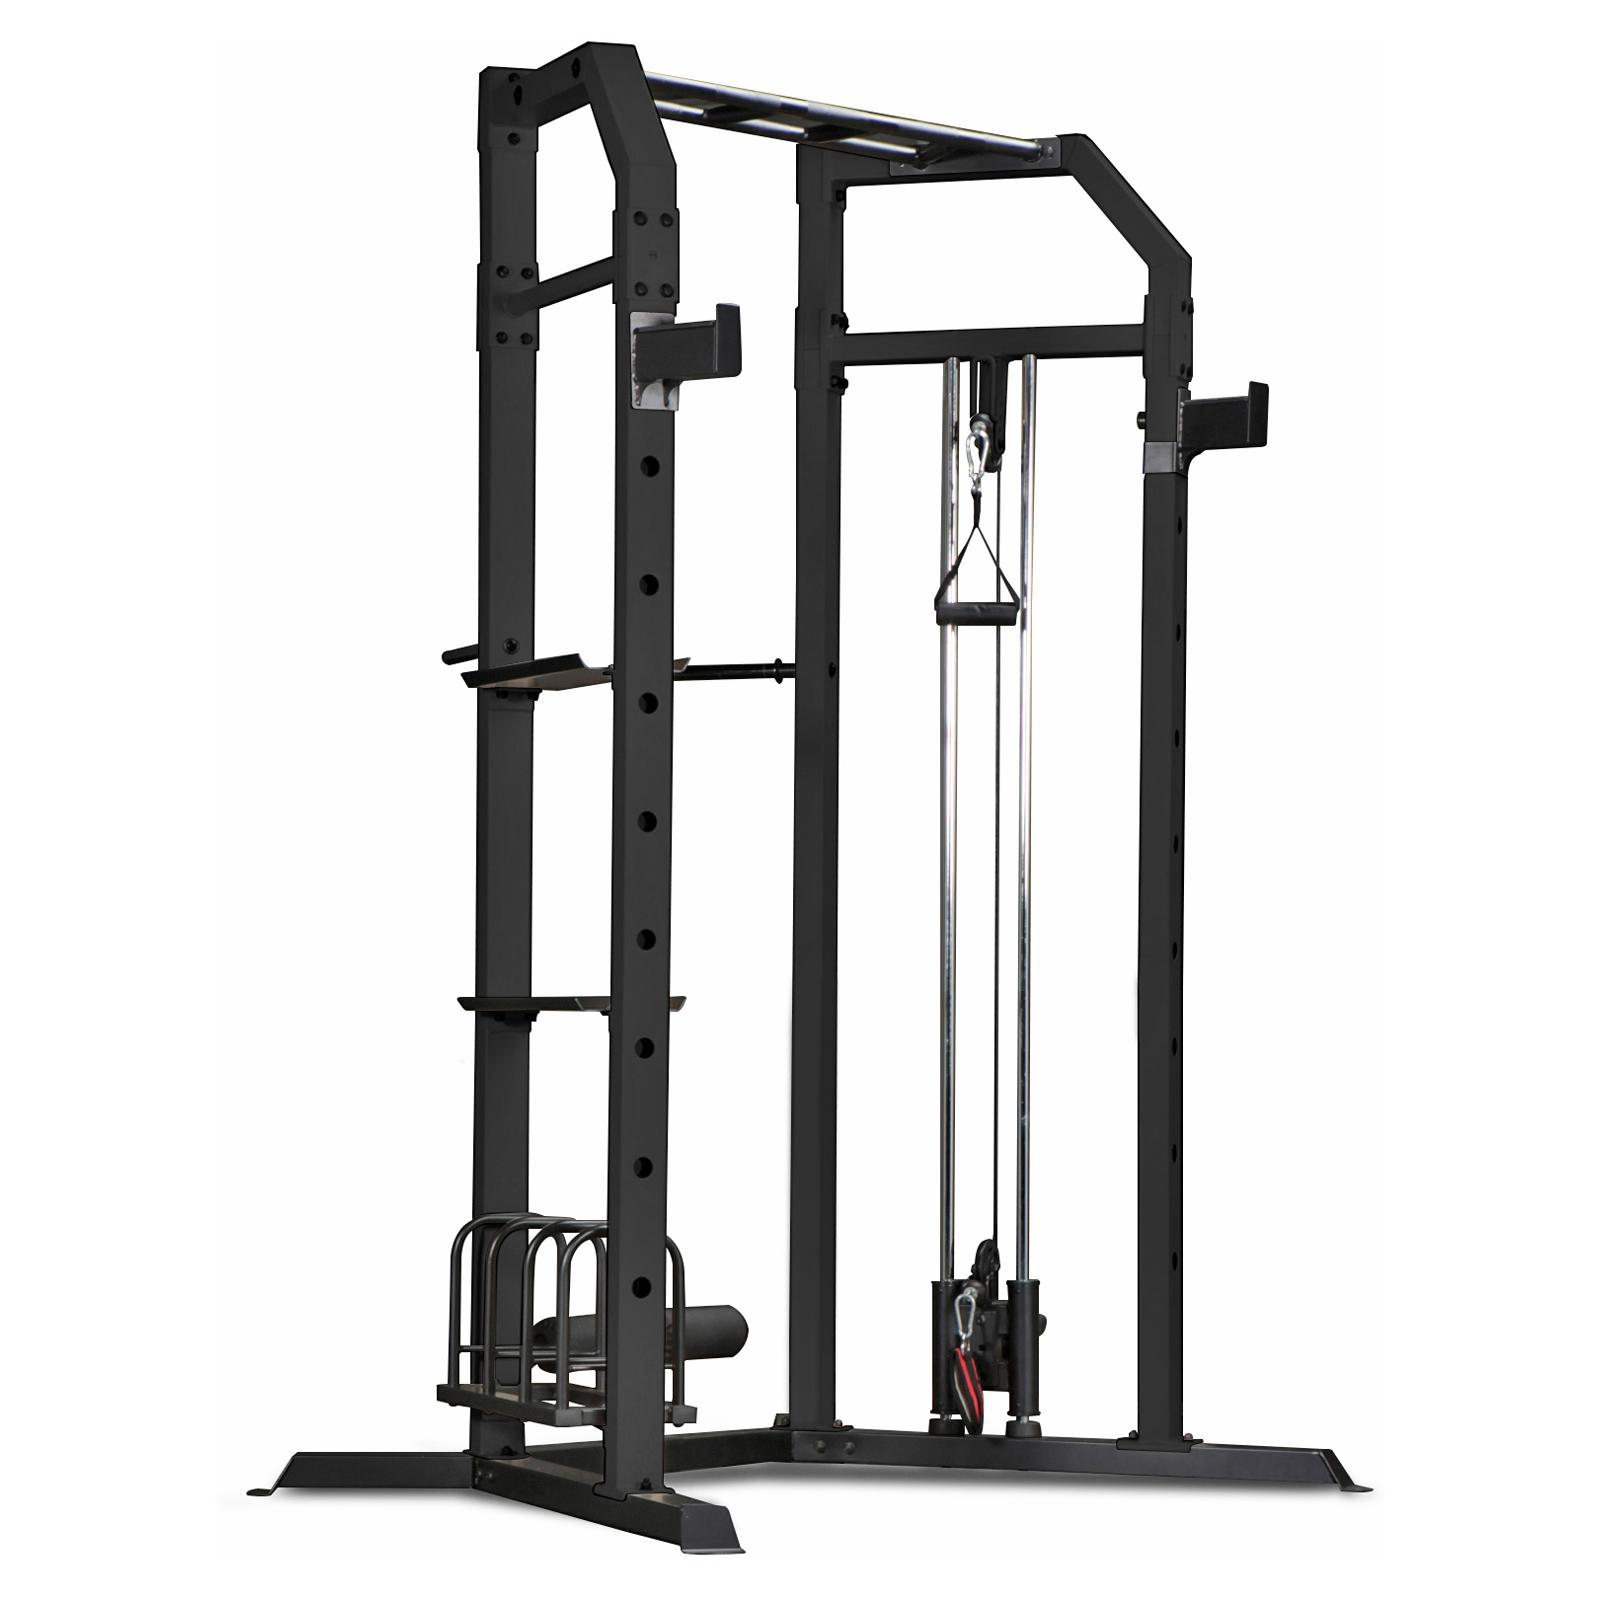 Marcy Olympic Multi-purpose Strength Training Cage with Pull Up Bars / Adjustable Bar Catchers and Pulley SM-3551 -  Impex, SM3551